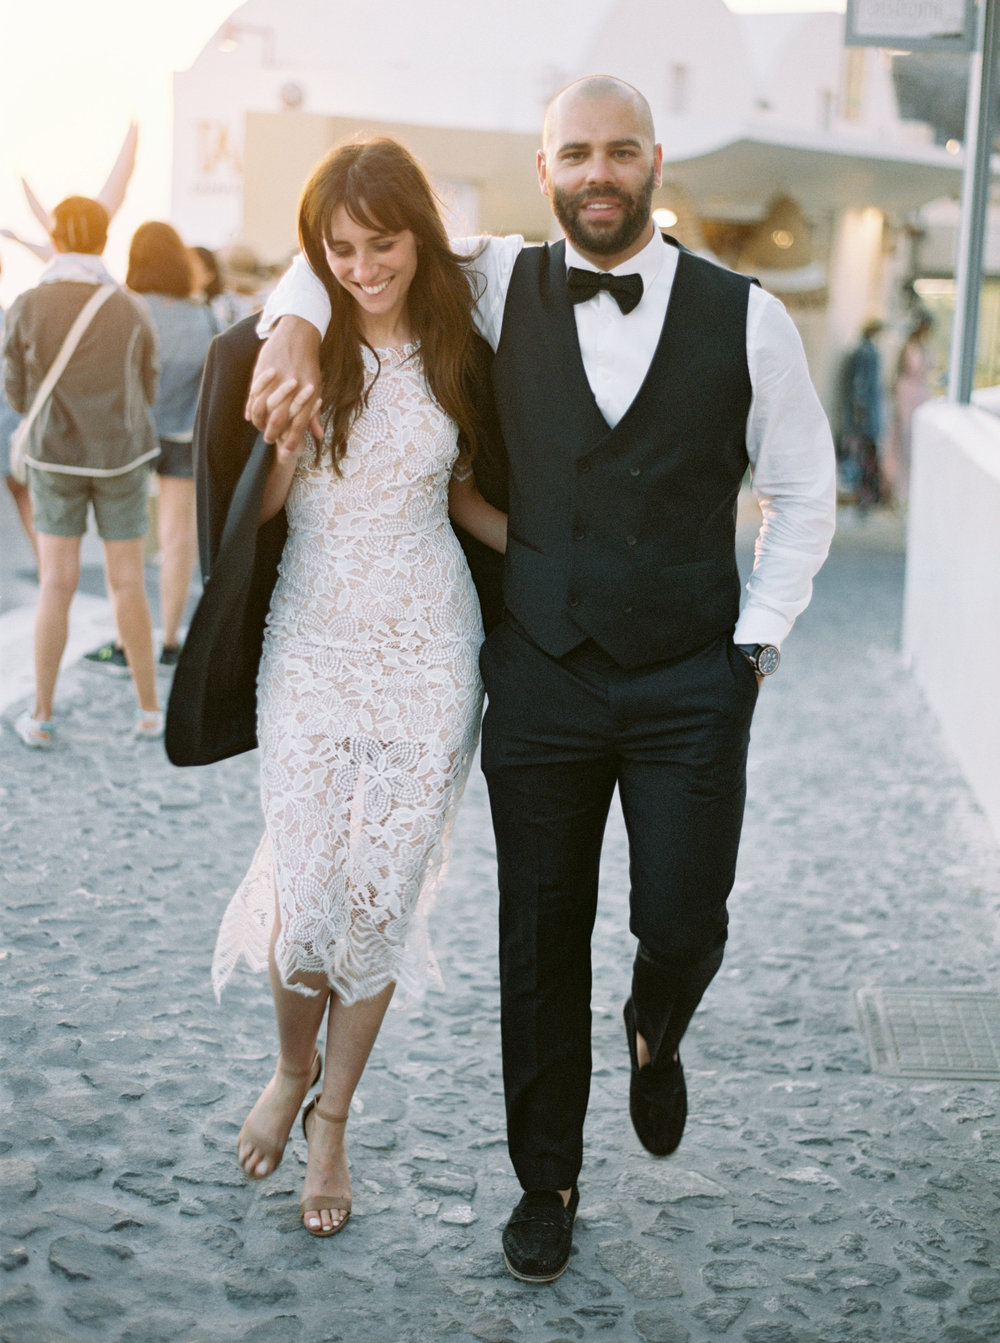 Photo by Katie Grant as part of our Anniversary shoot in Santorini, Greece